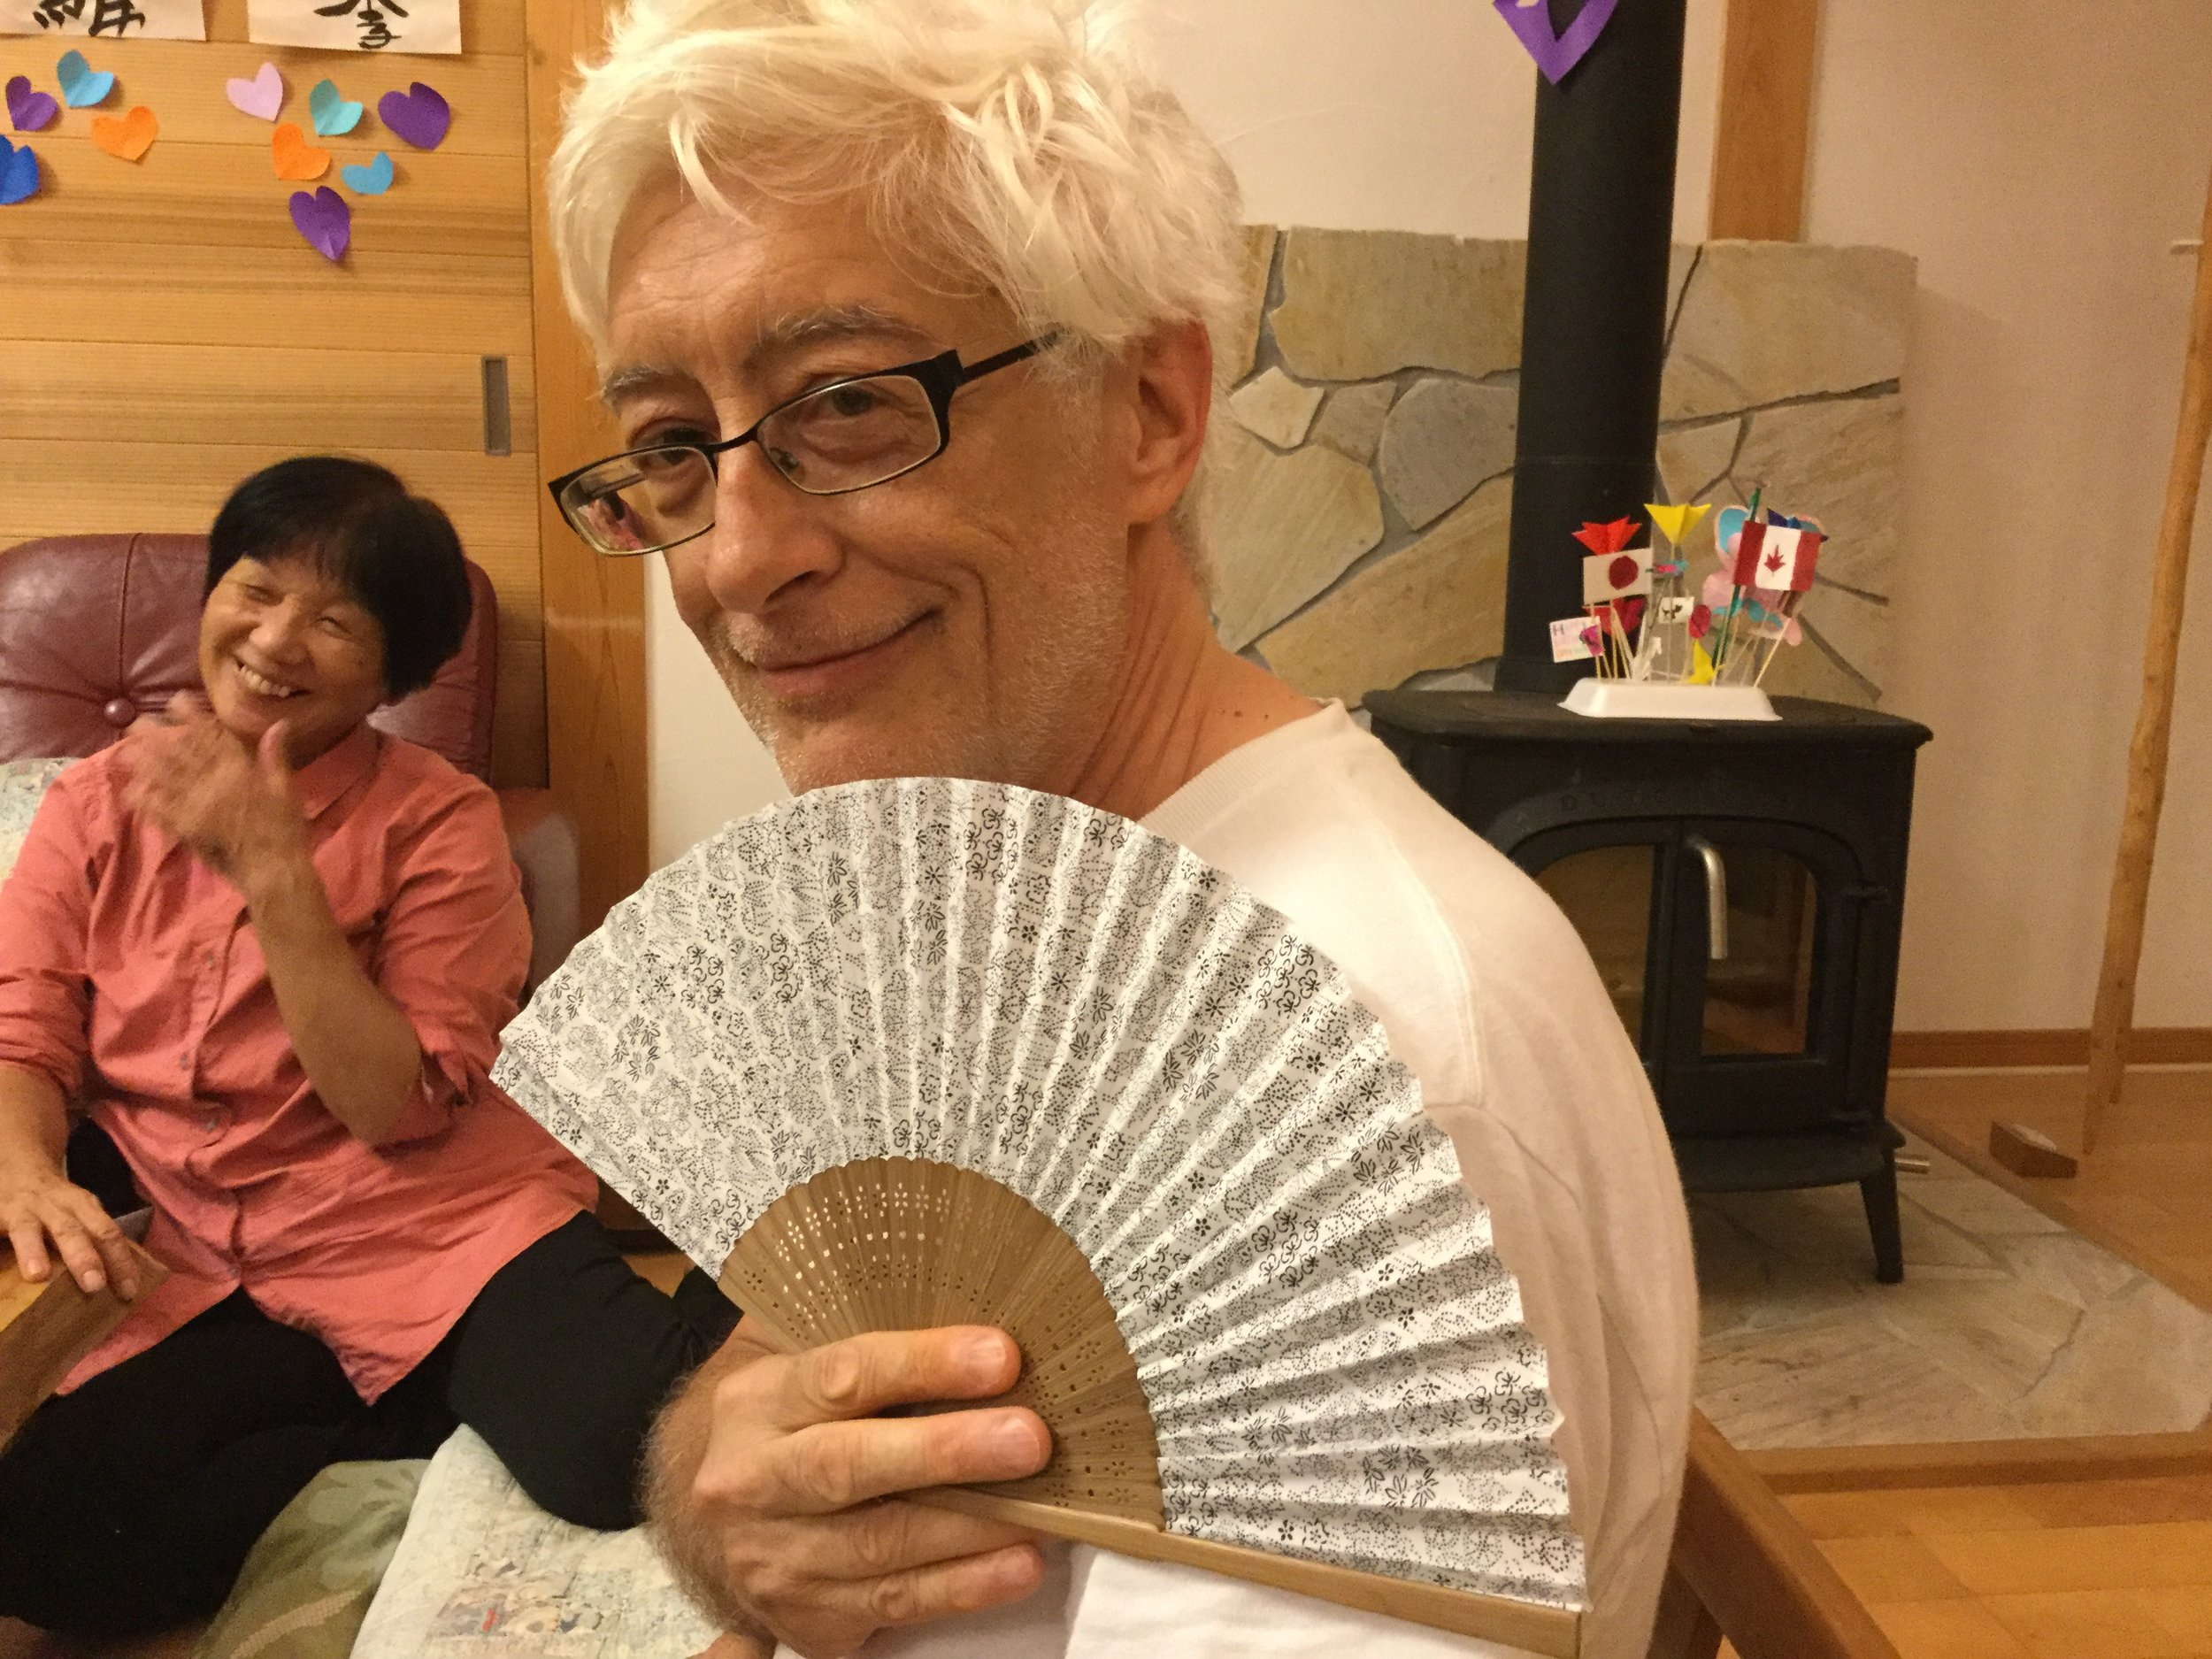 A beautiful fan for all the hot countries we will visit from Naoki and Yoshiko. What a thoughtful gift.